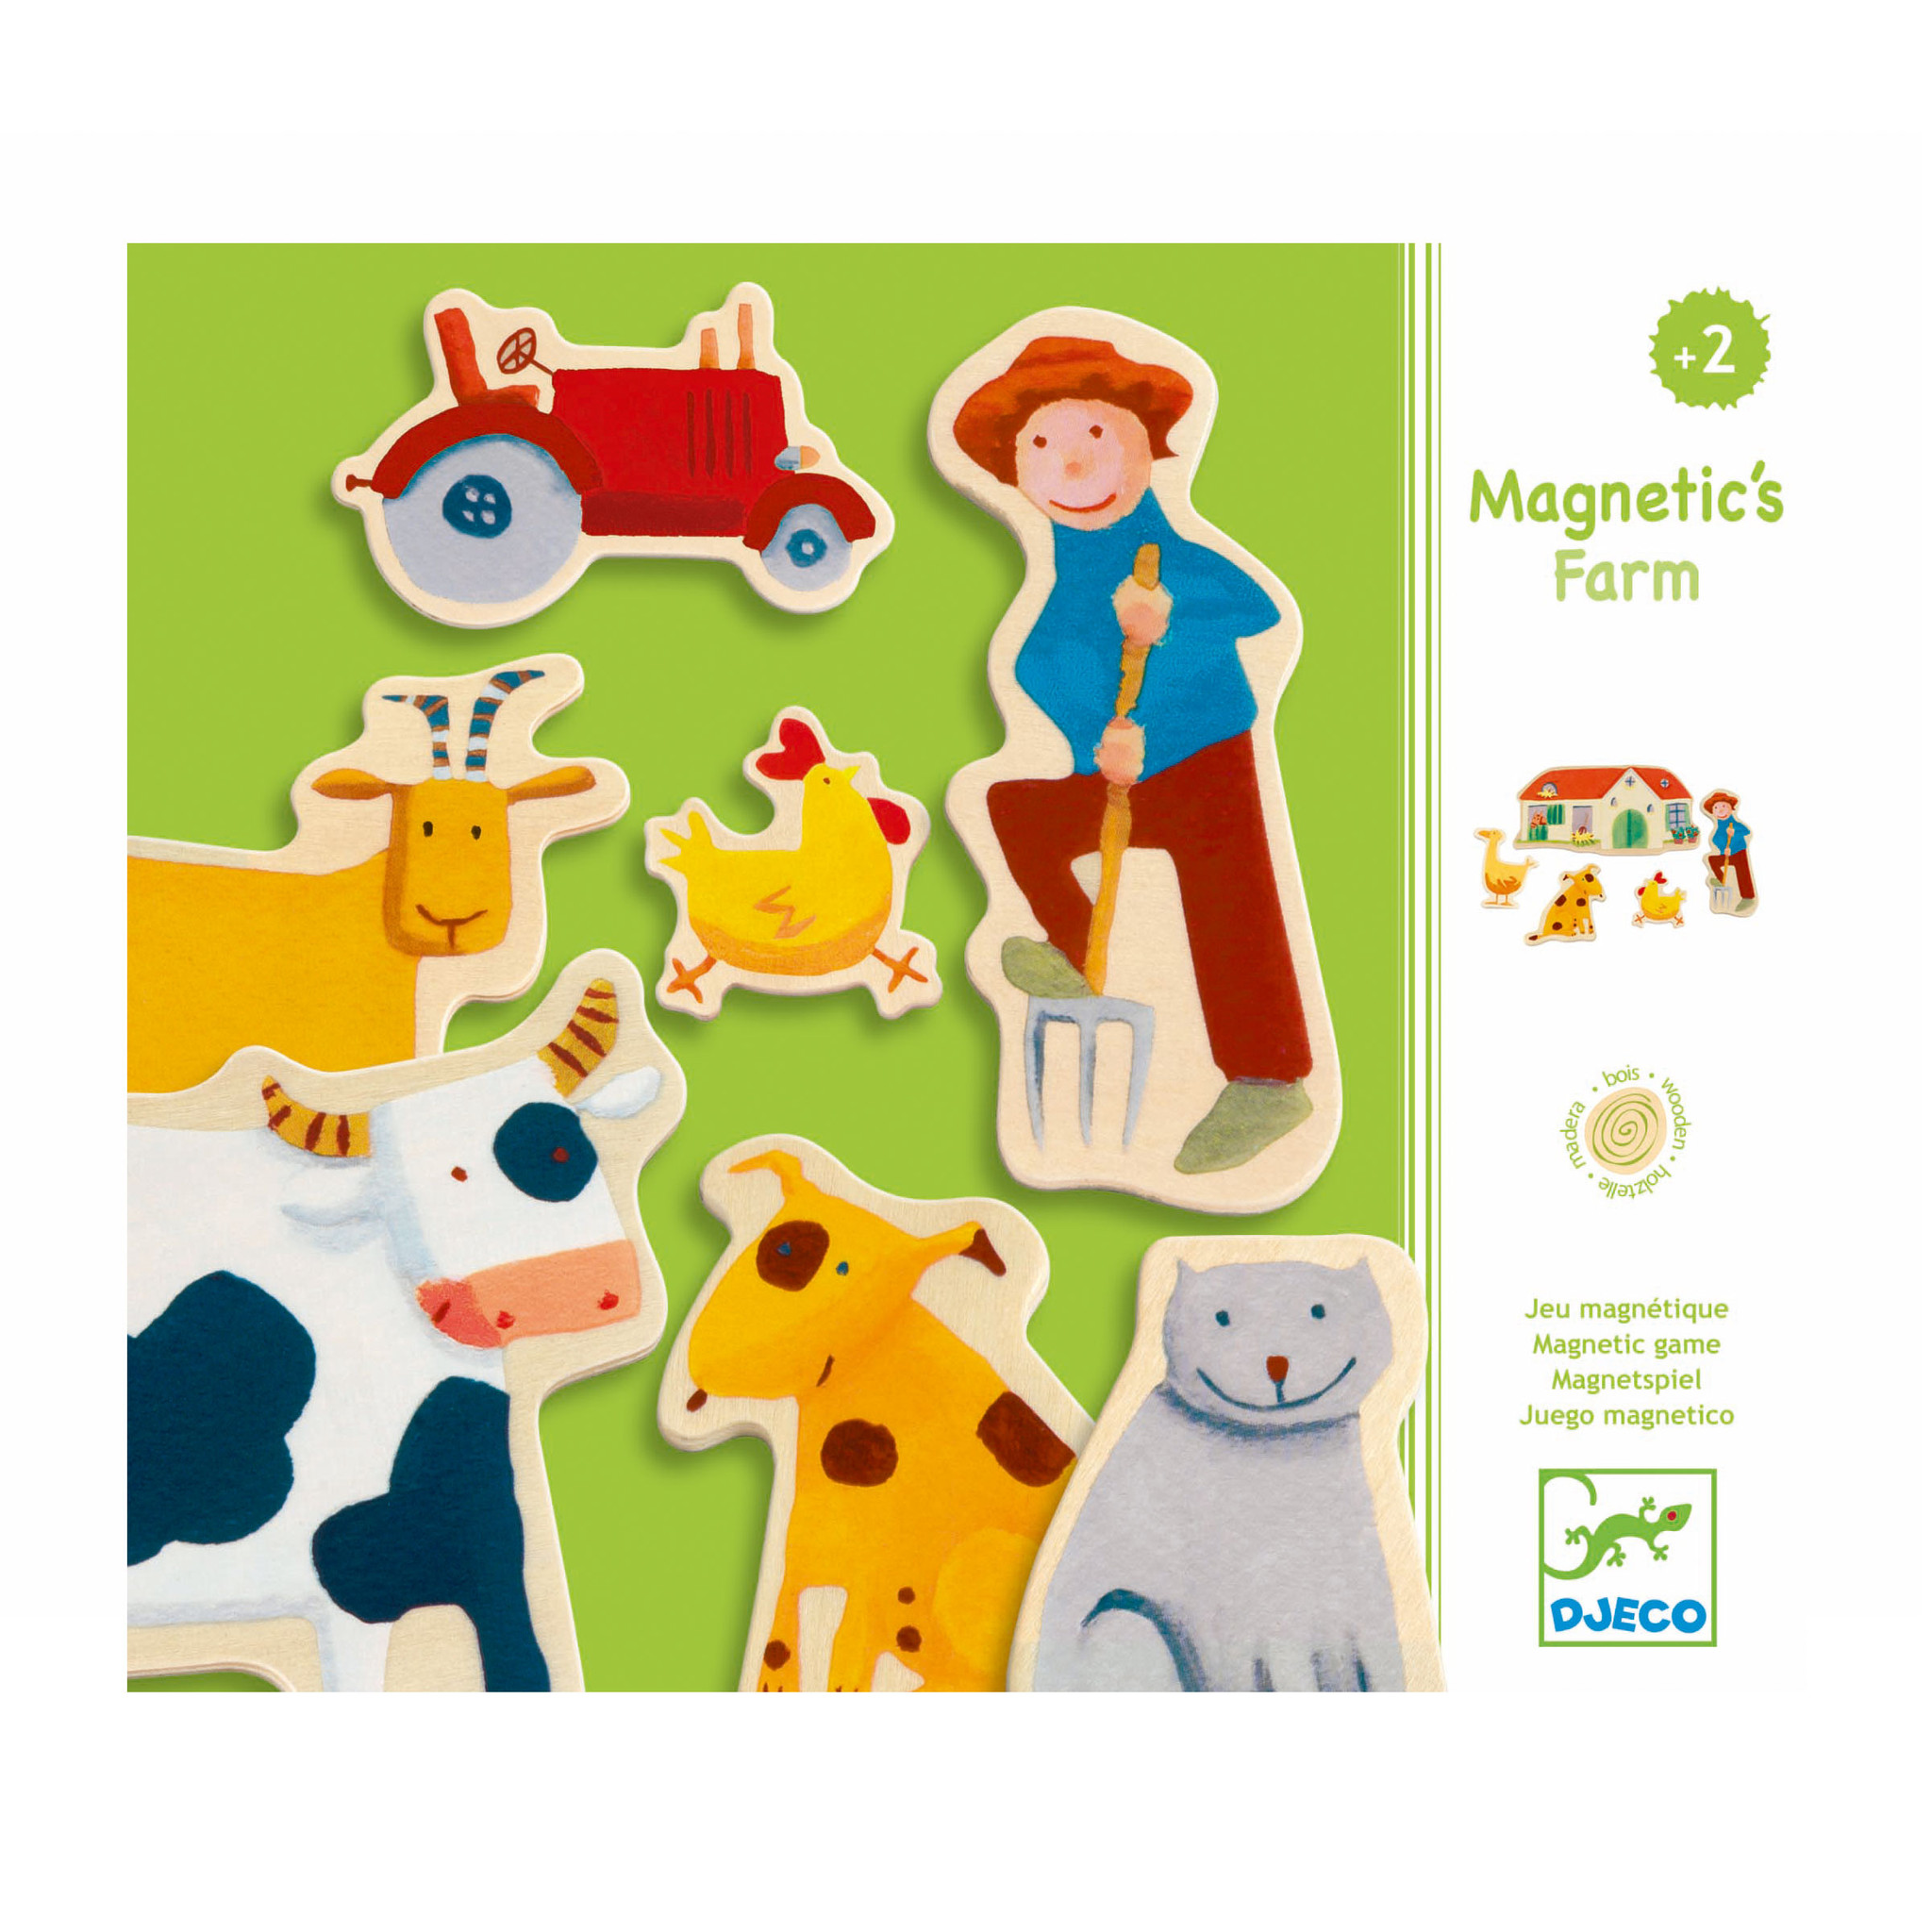 djeco-magnetics-farm-magnet-set